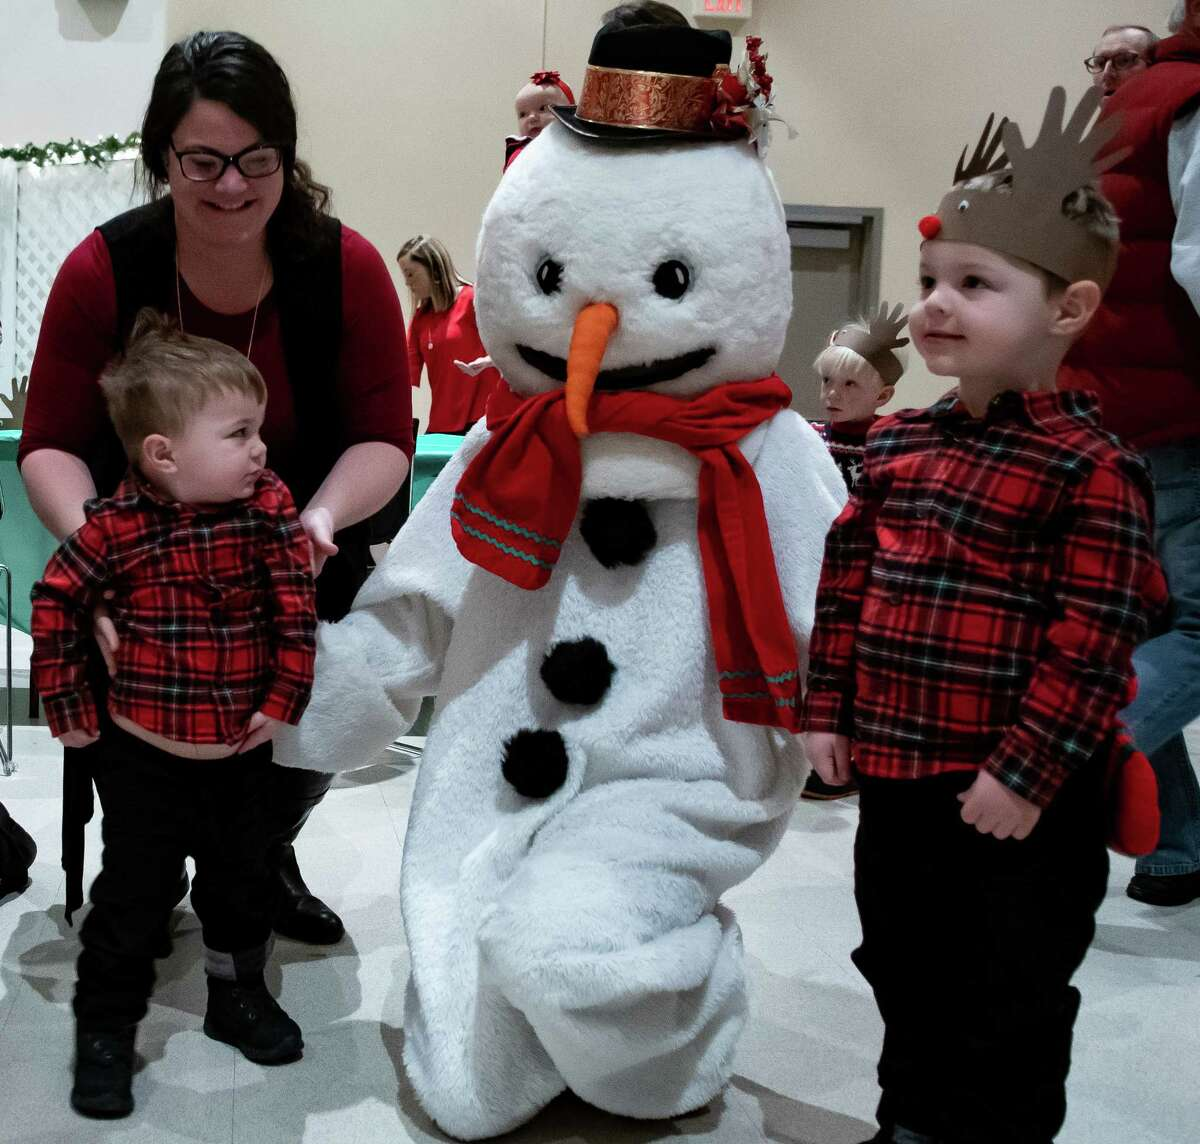 Tina Gac of Saratoga tries to encourage her younger son, Walker Gac, 2, to be in a photo with Frosty and his elder brother, Colton, 3, at the Saratoga Festival of Trees in the City Center of Saratoga Springs, N.Y. on Dec. 7, 2019. (Jenn March, Special to the Times Union )